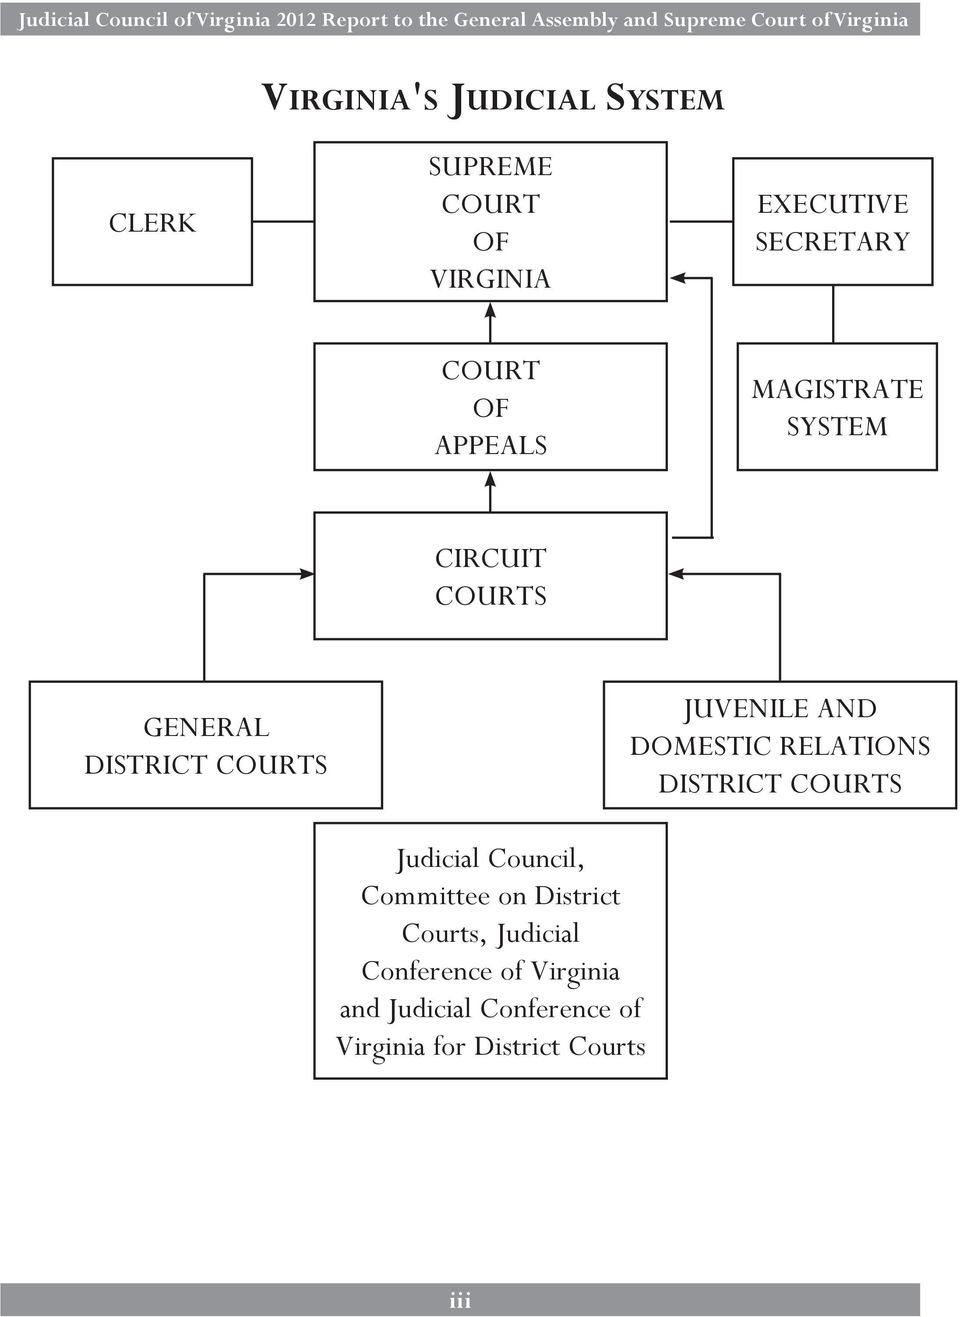 Committee on District Courts, Judicial Conference of Virginia and Judicial Conference of Virginia for District Courts State Board